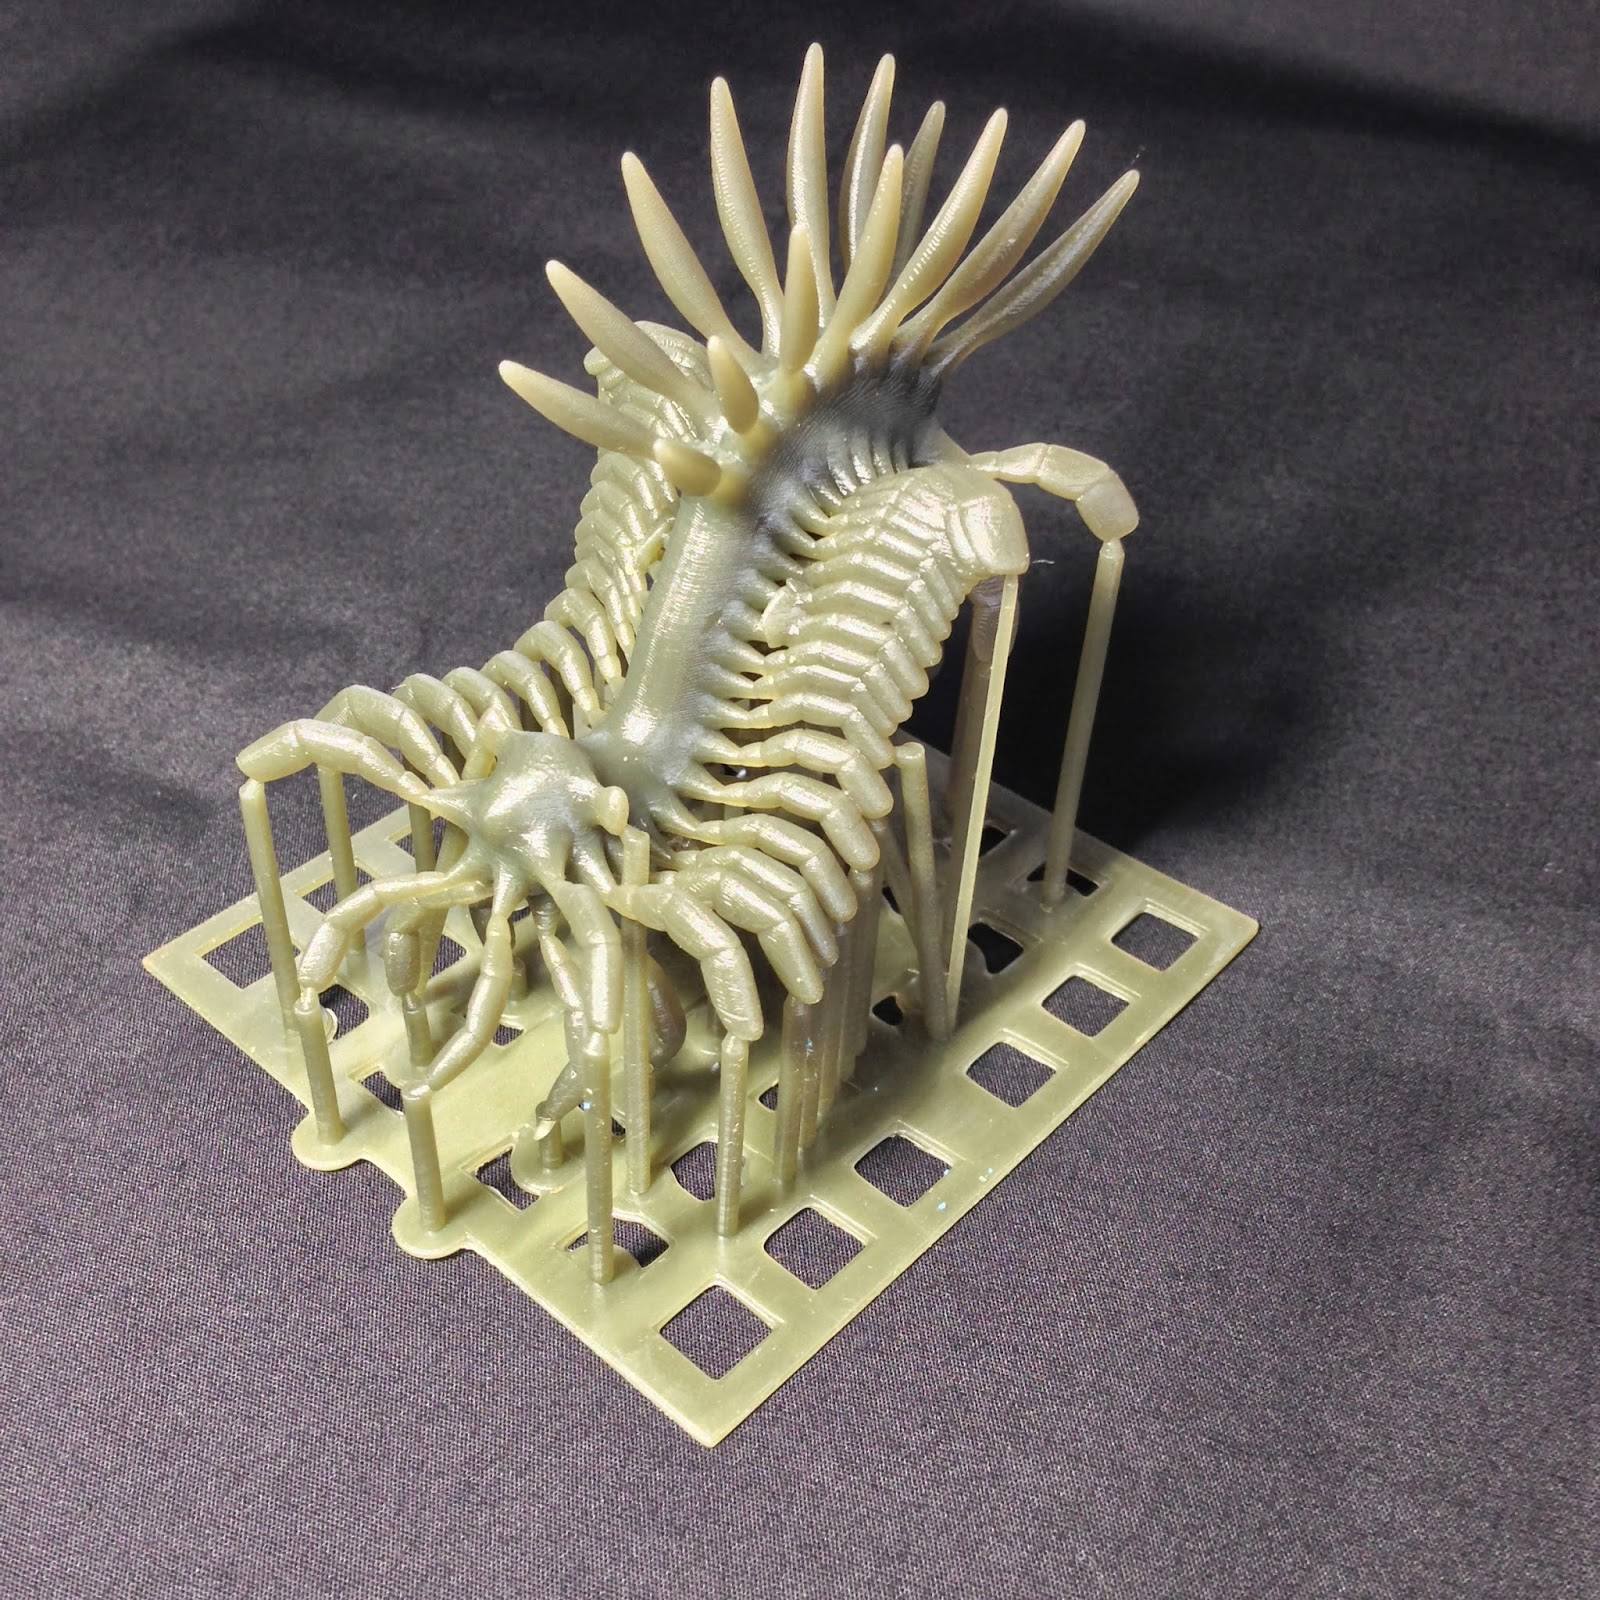 Generative Modeling Project: 3D print test  (larger model)